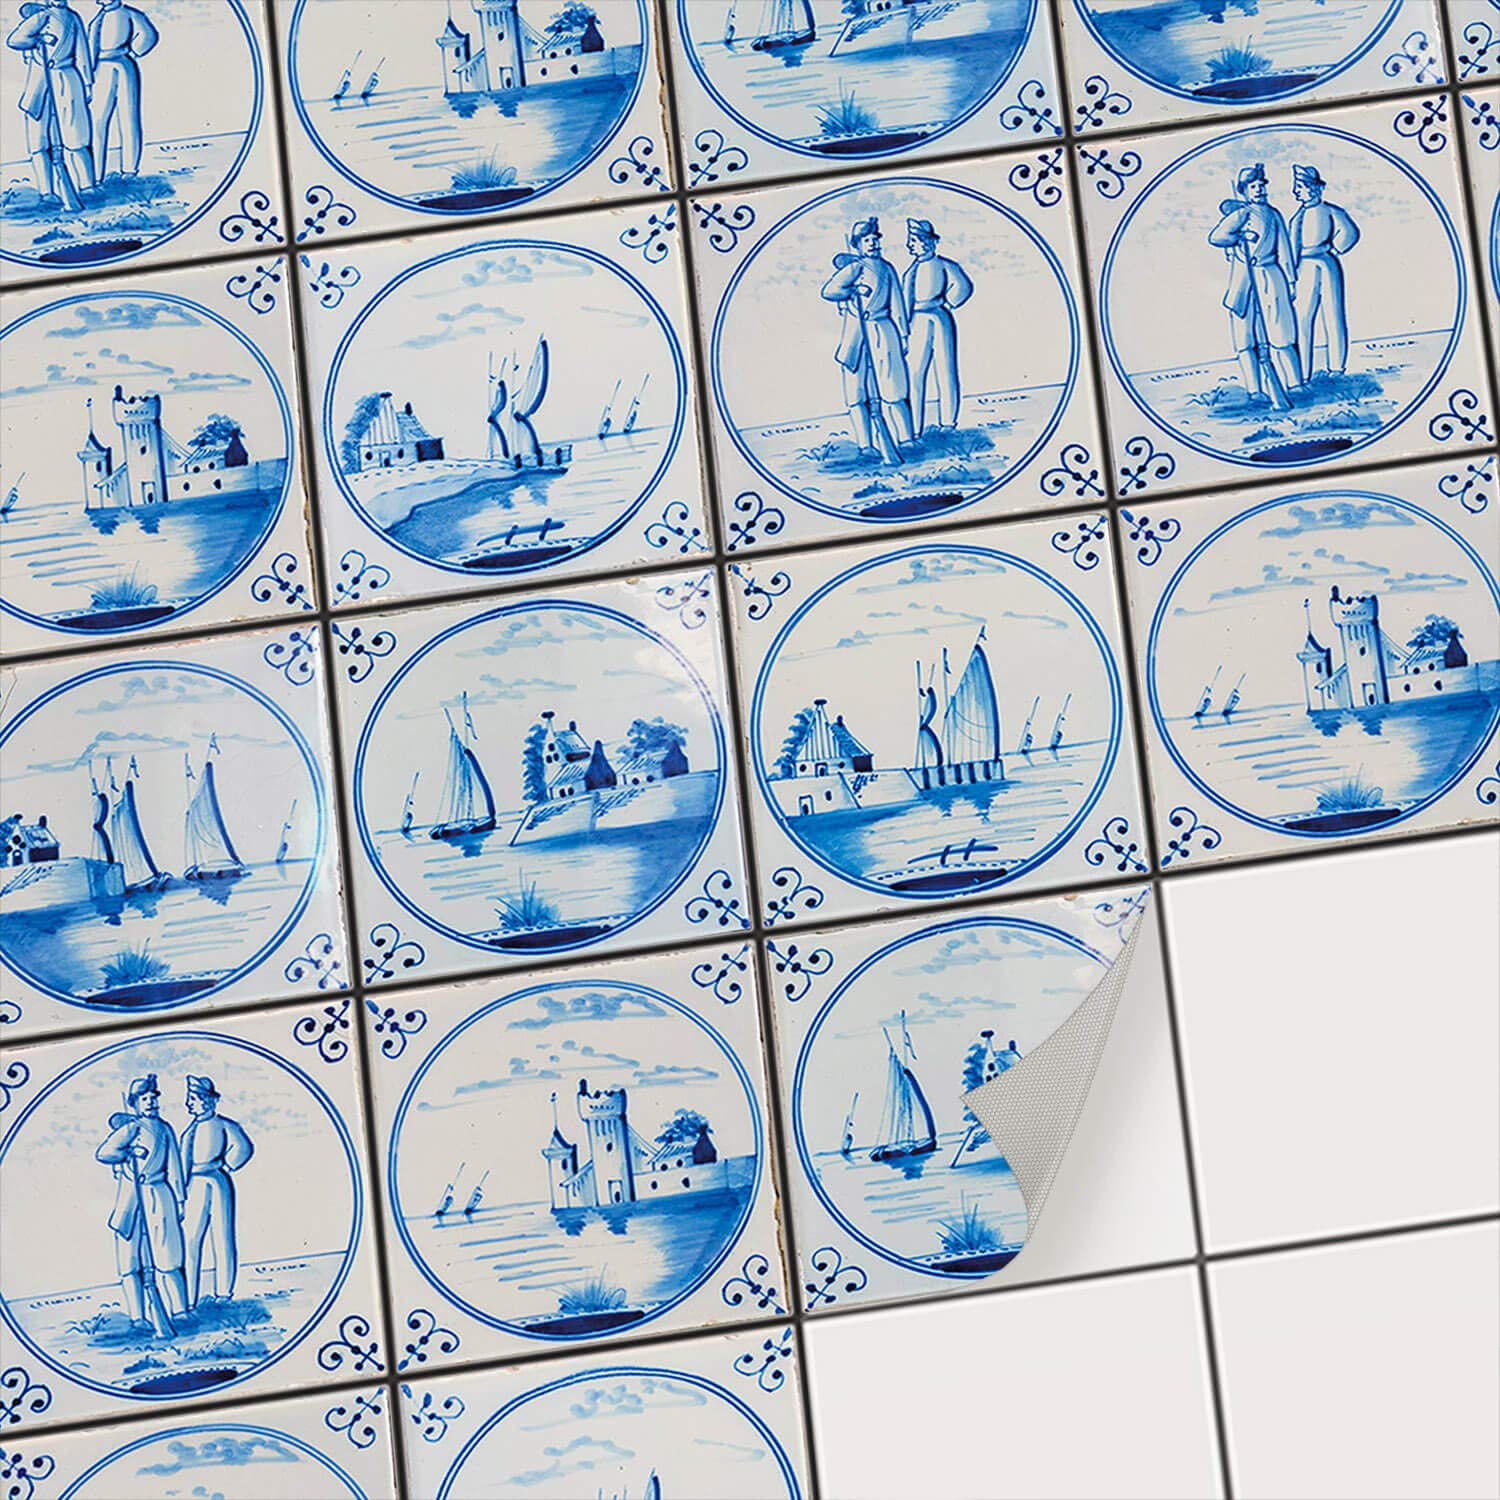 Removable Self Adhesive Mosaic Tile Stickers - Deco Wall Tattoos for Kitchen Tiles | Vinyl Wall Decals for Bathroom Wall Tiles - Peel and Stick Home Decor | 8x8 inches - 20x20 cm / Different Sizes - 27 Pieces creatisto GmbH